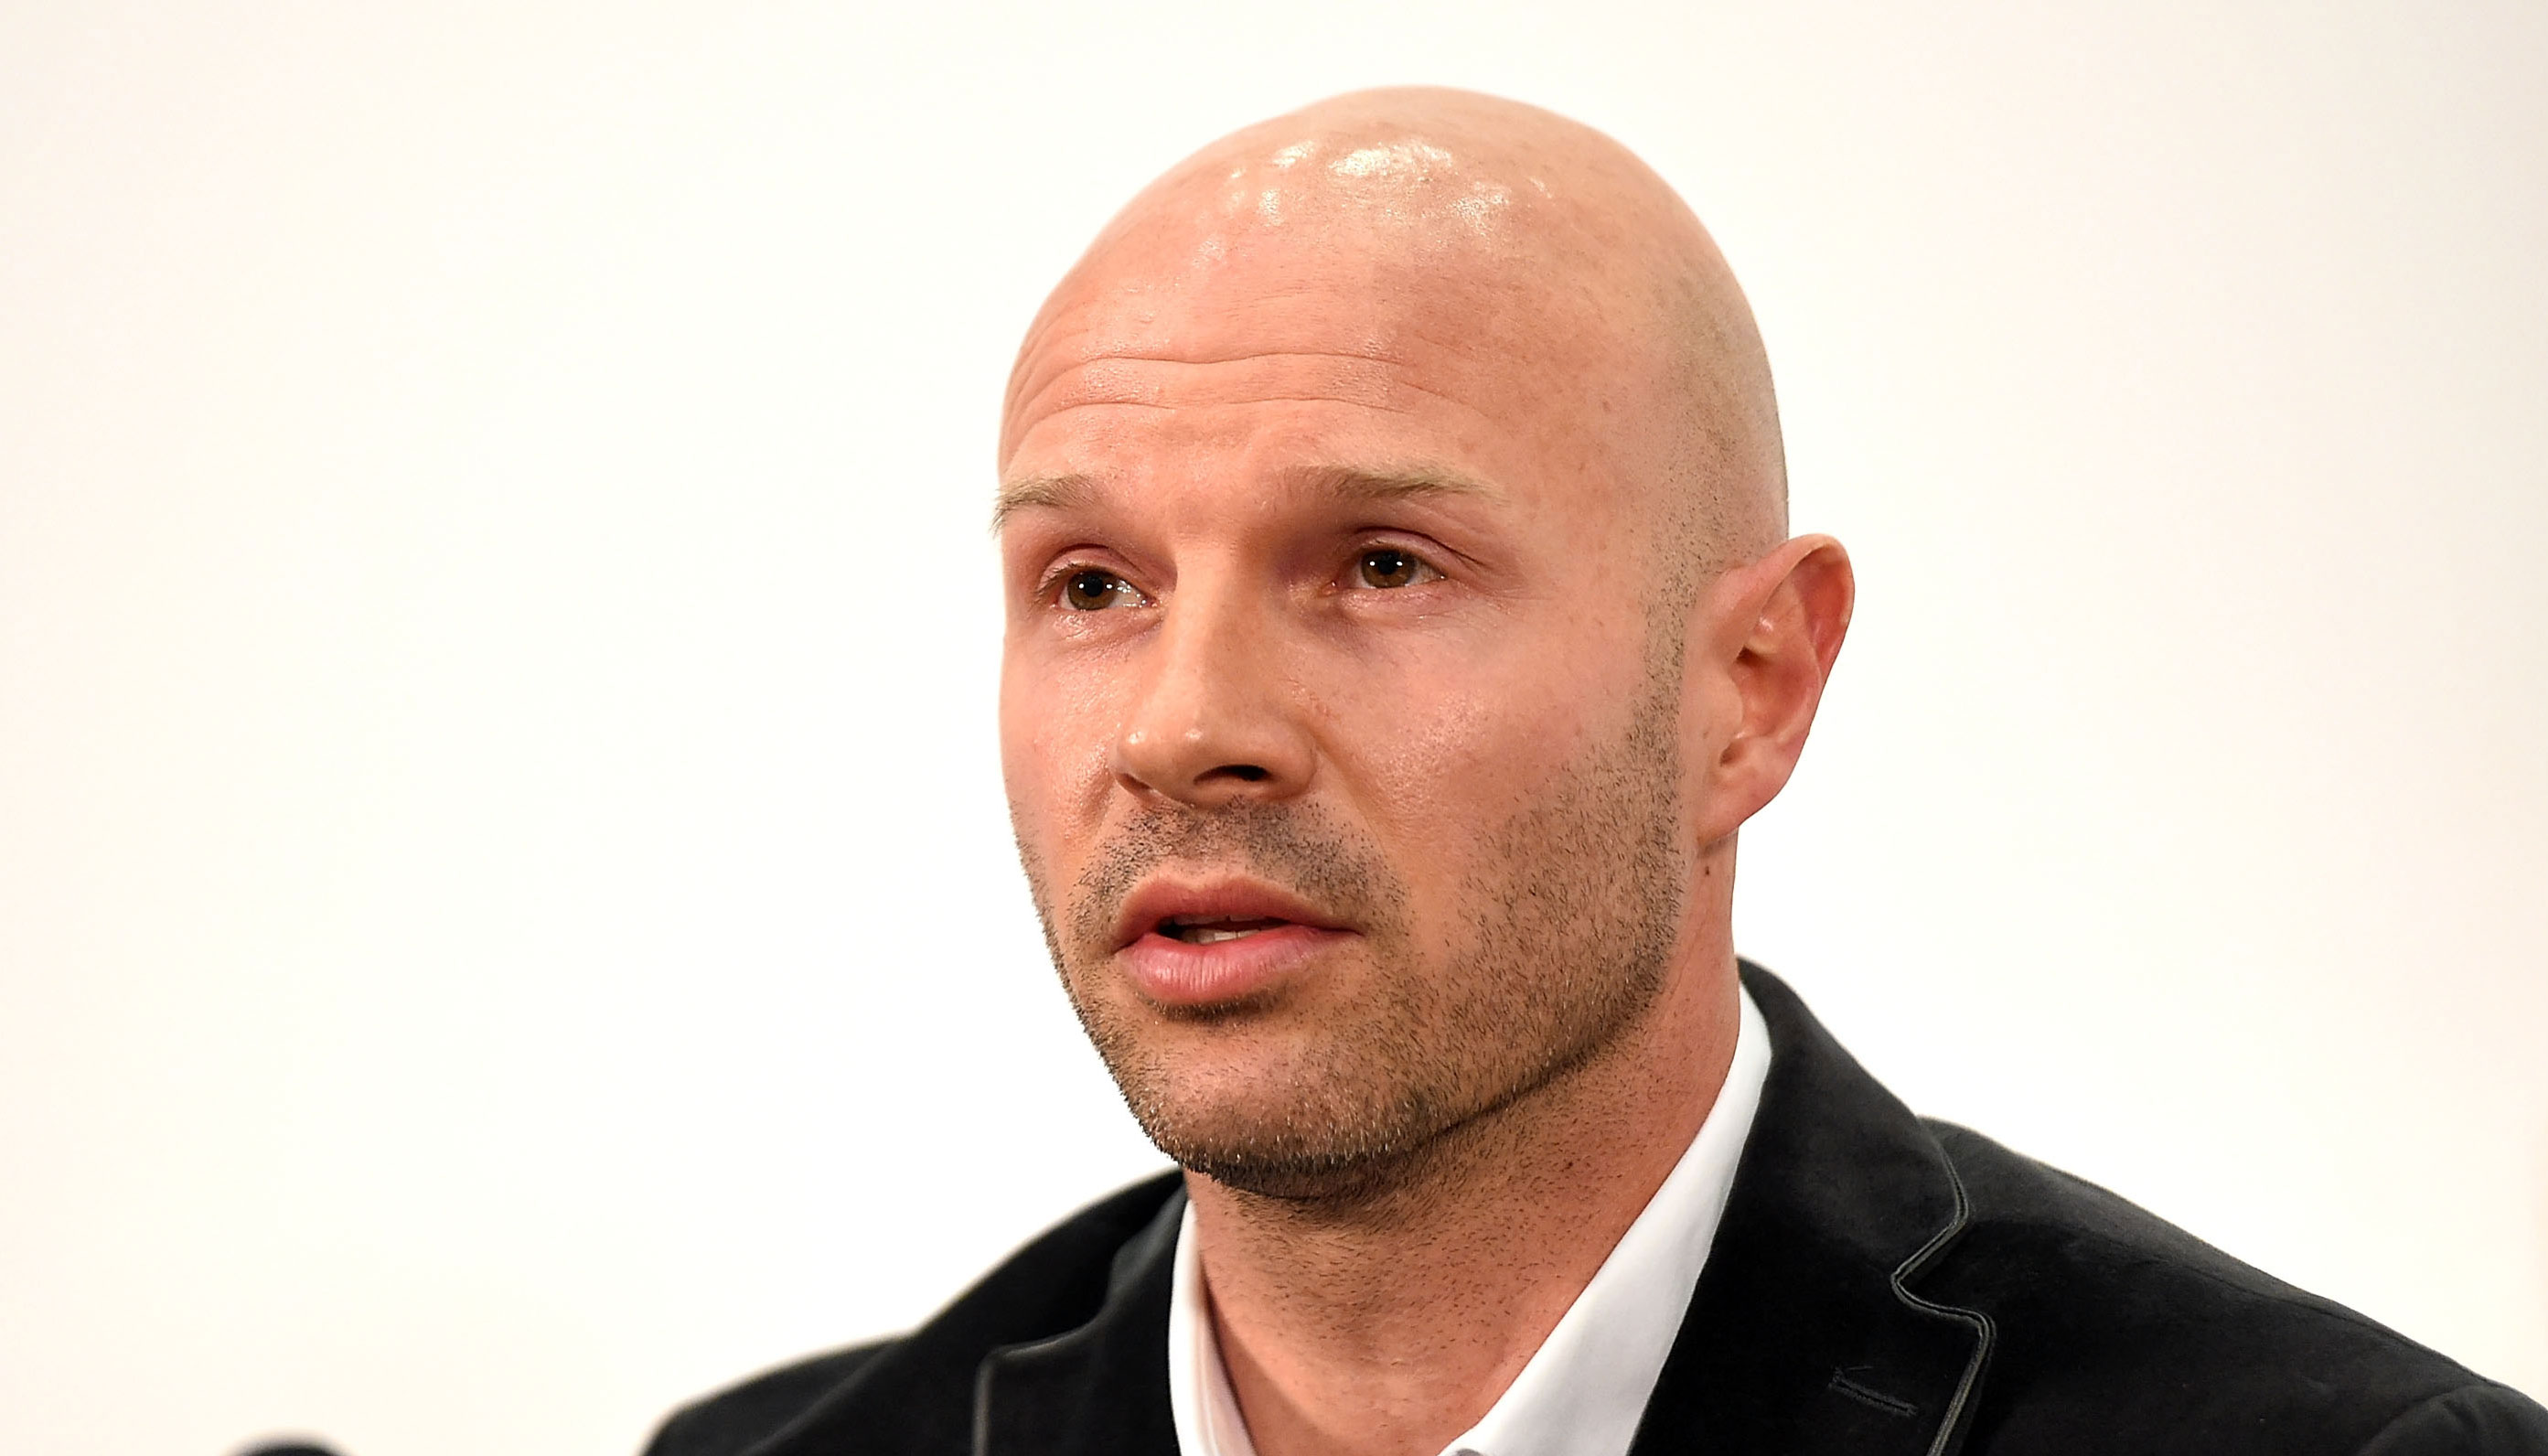 bwin exclusive: Q&A with Danny Mills